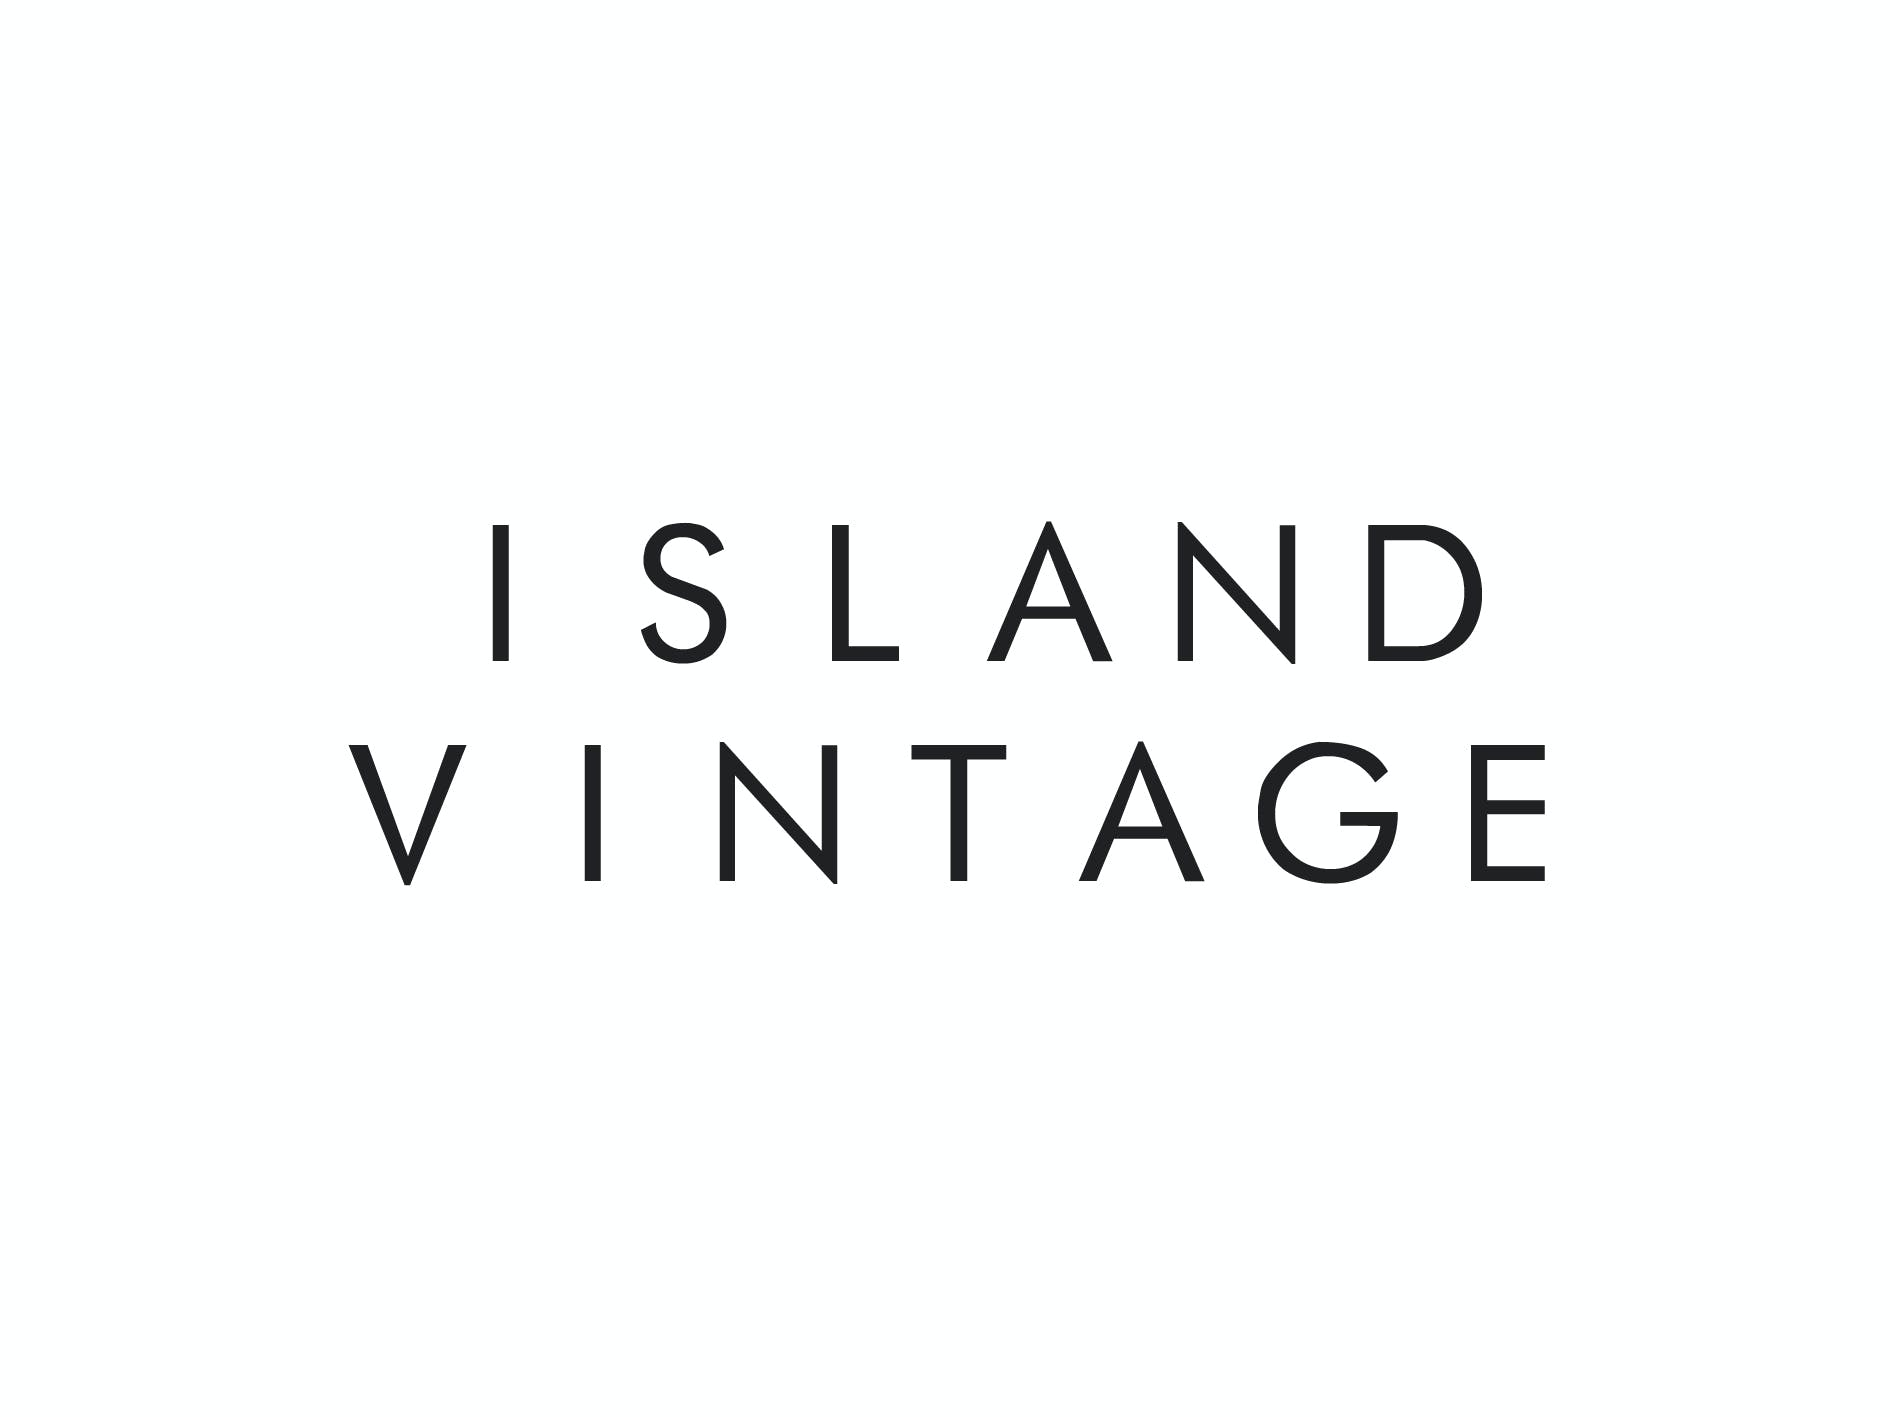 Island Vintage - Record Store Image